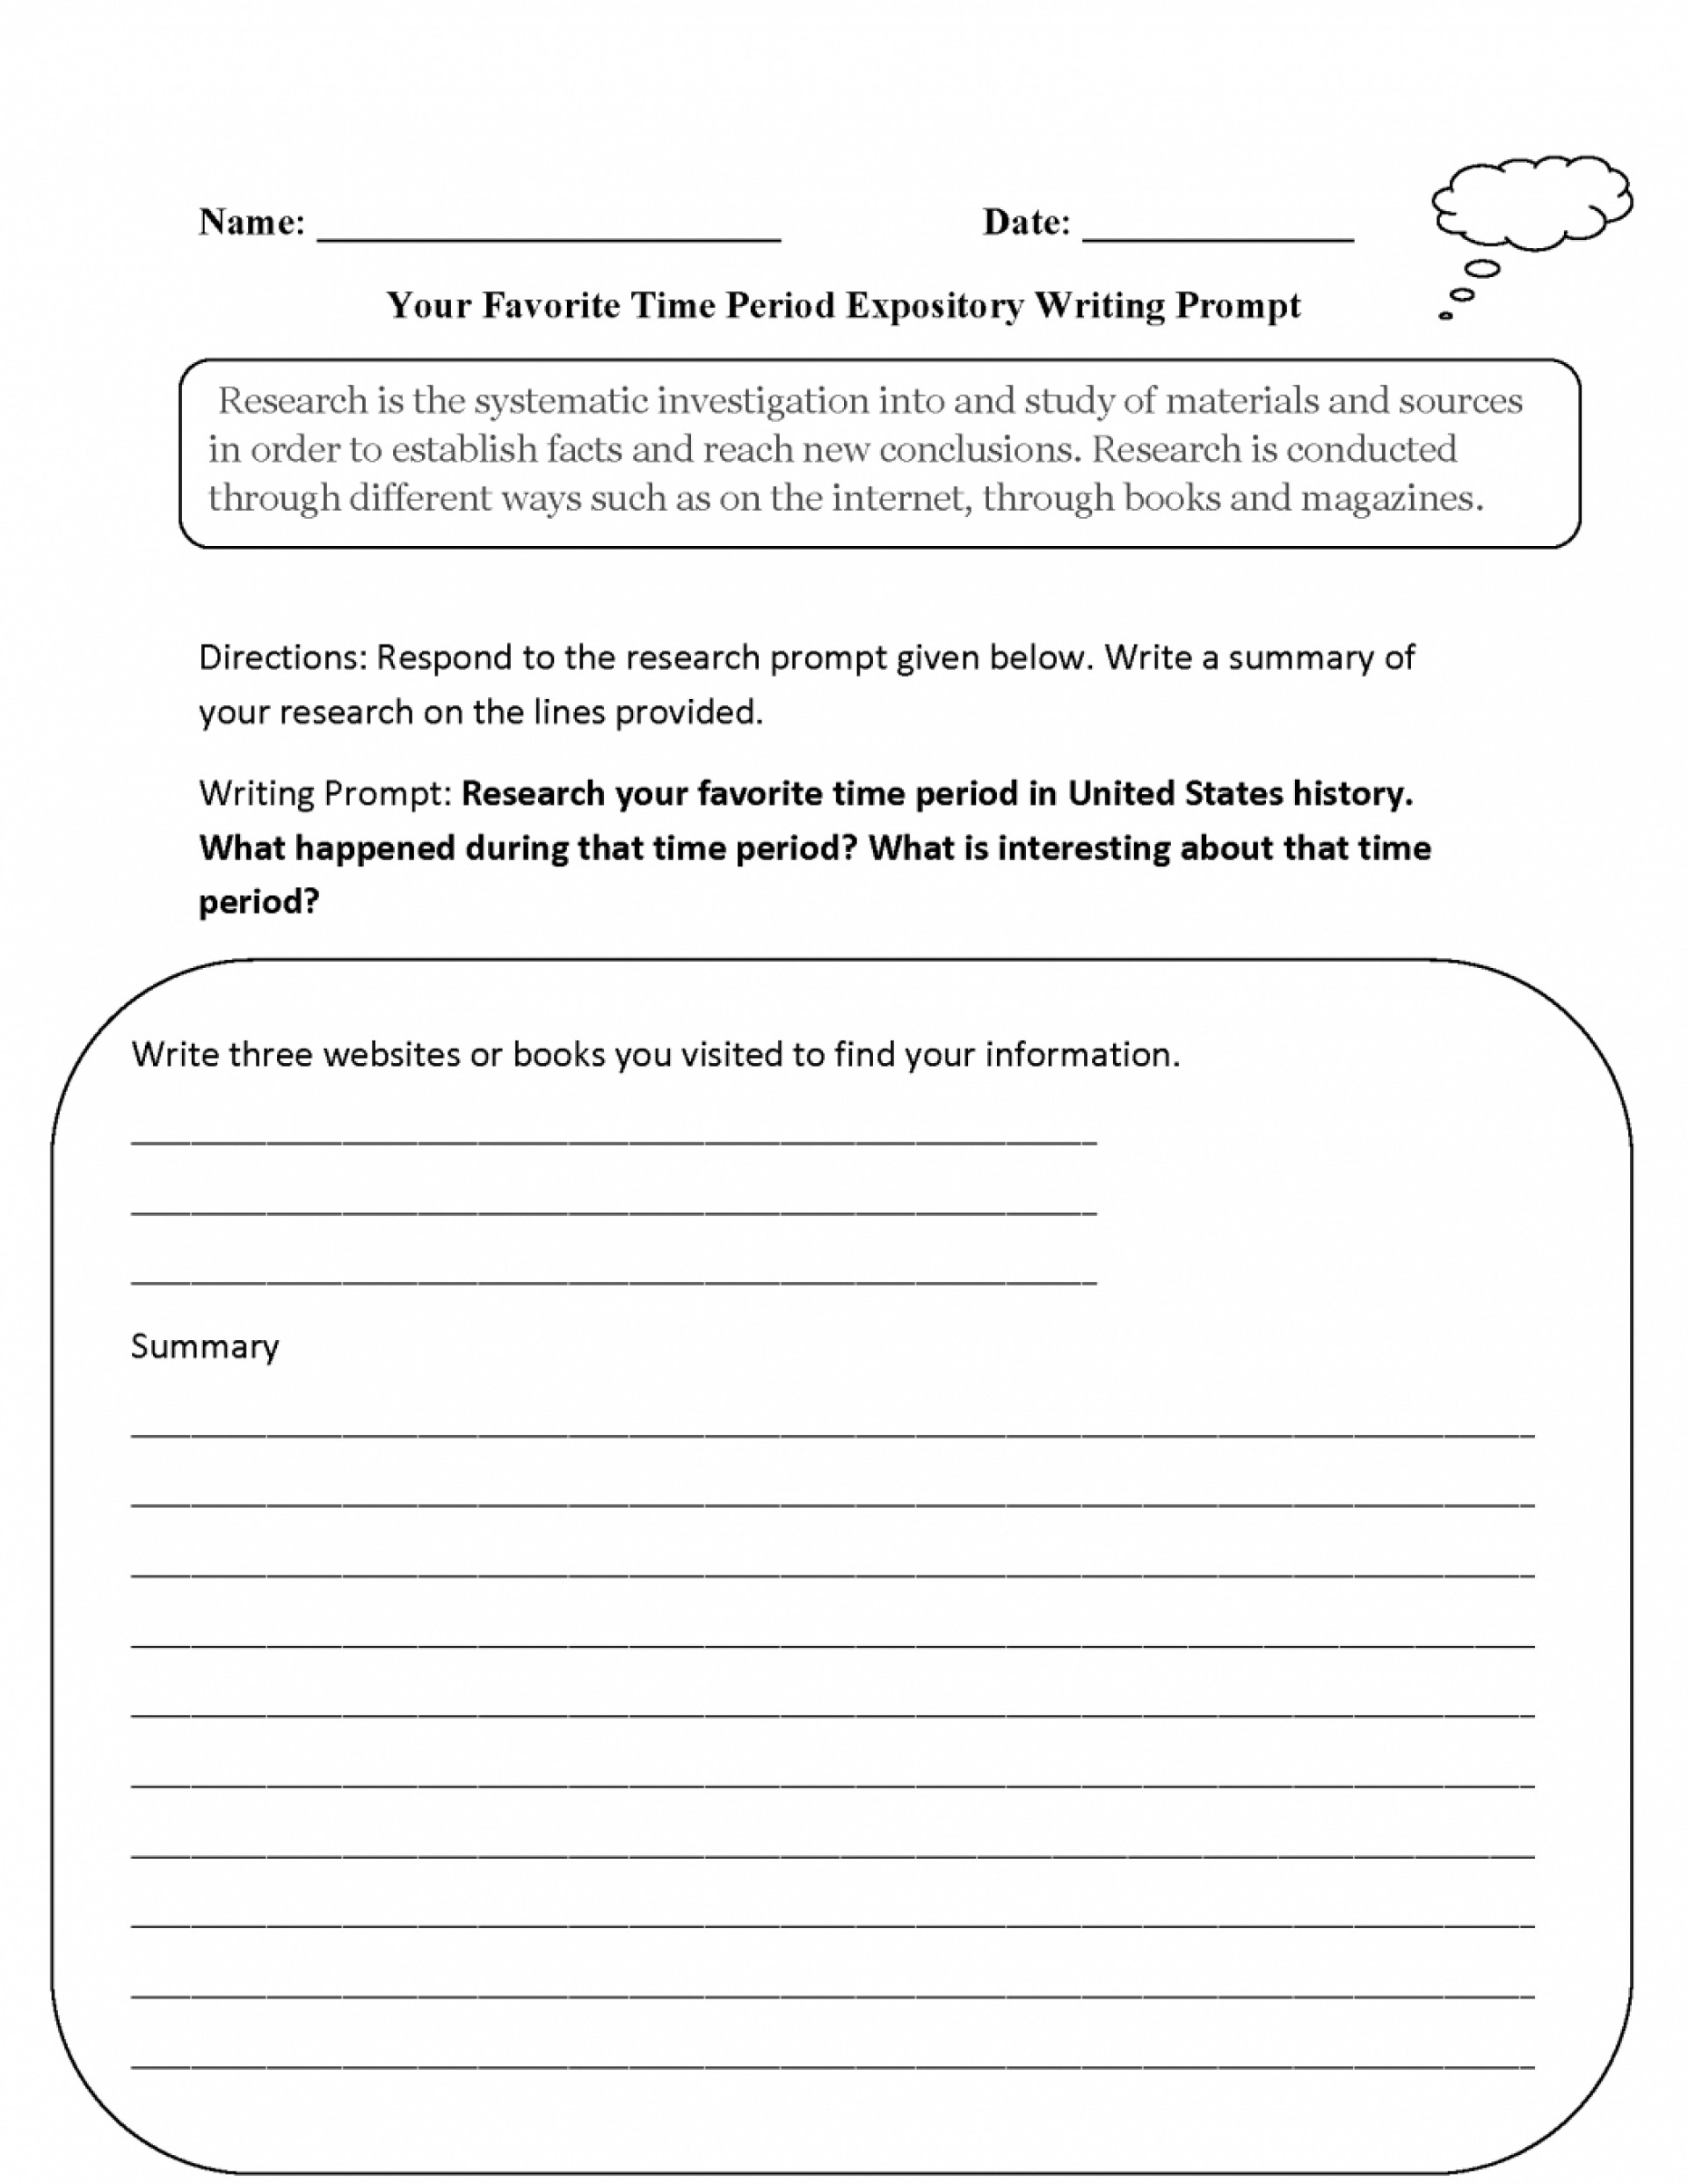 018 Essay Example Good Informative Topics Prompts Favorite Time Period Expository Writing P To Write An On The Topic Of Immigration Remarkable For High School 4th Grade 1920